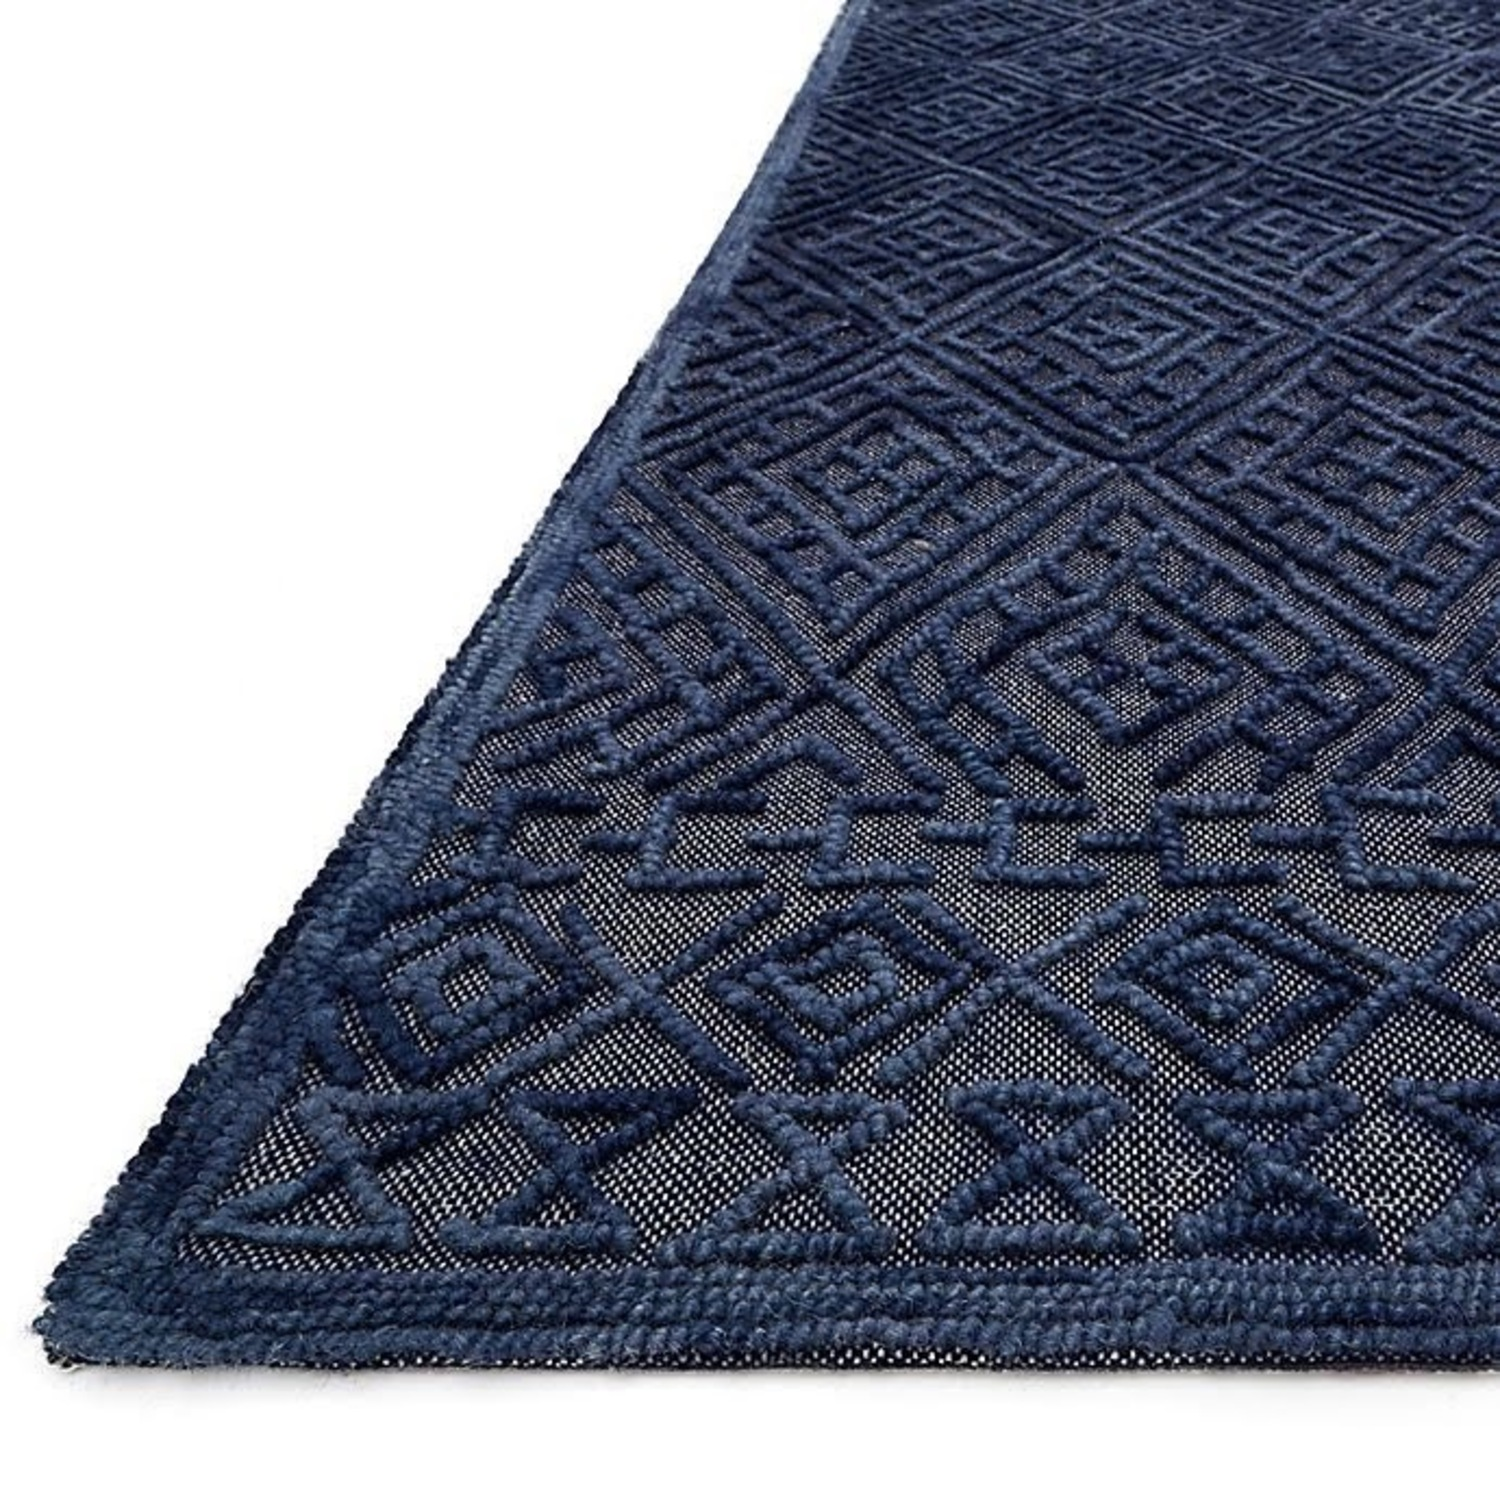 Navy Area Rug - image-1